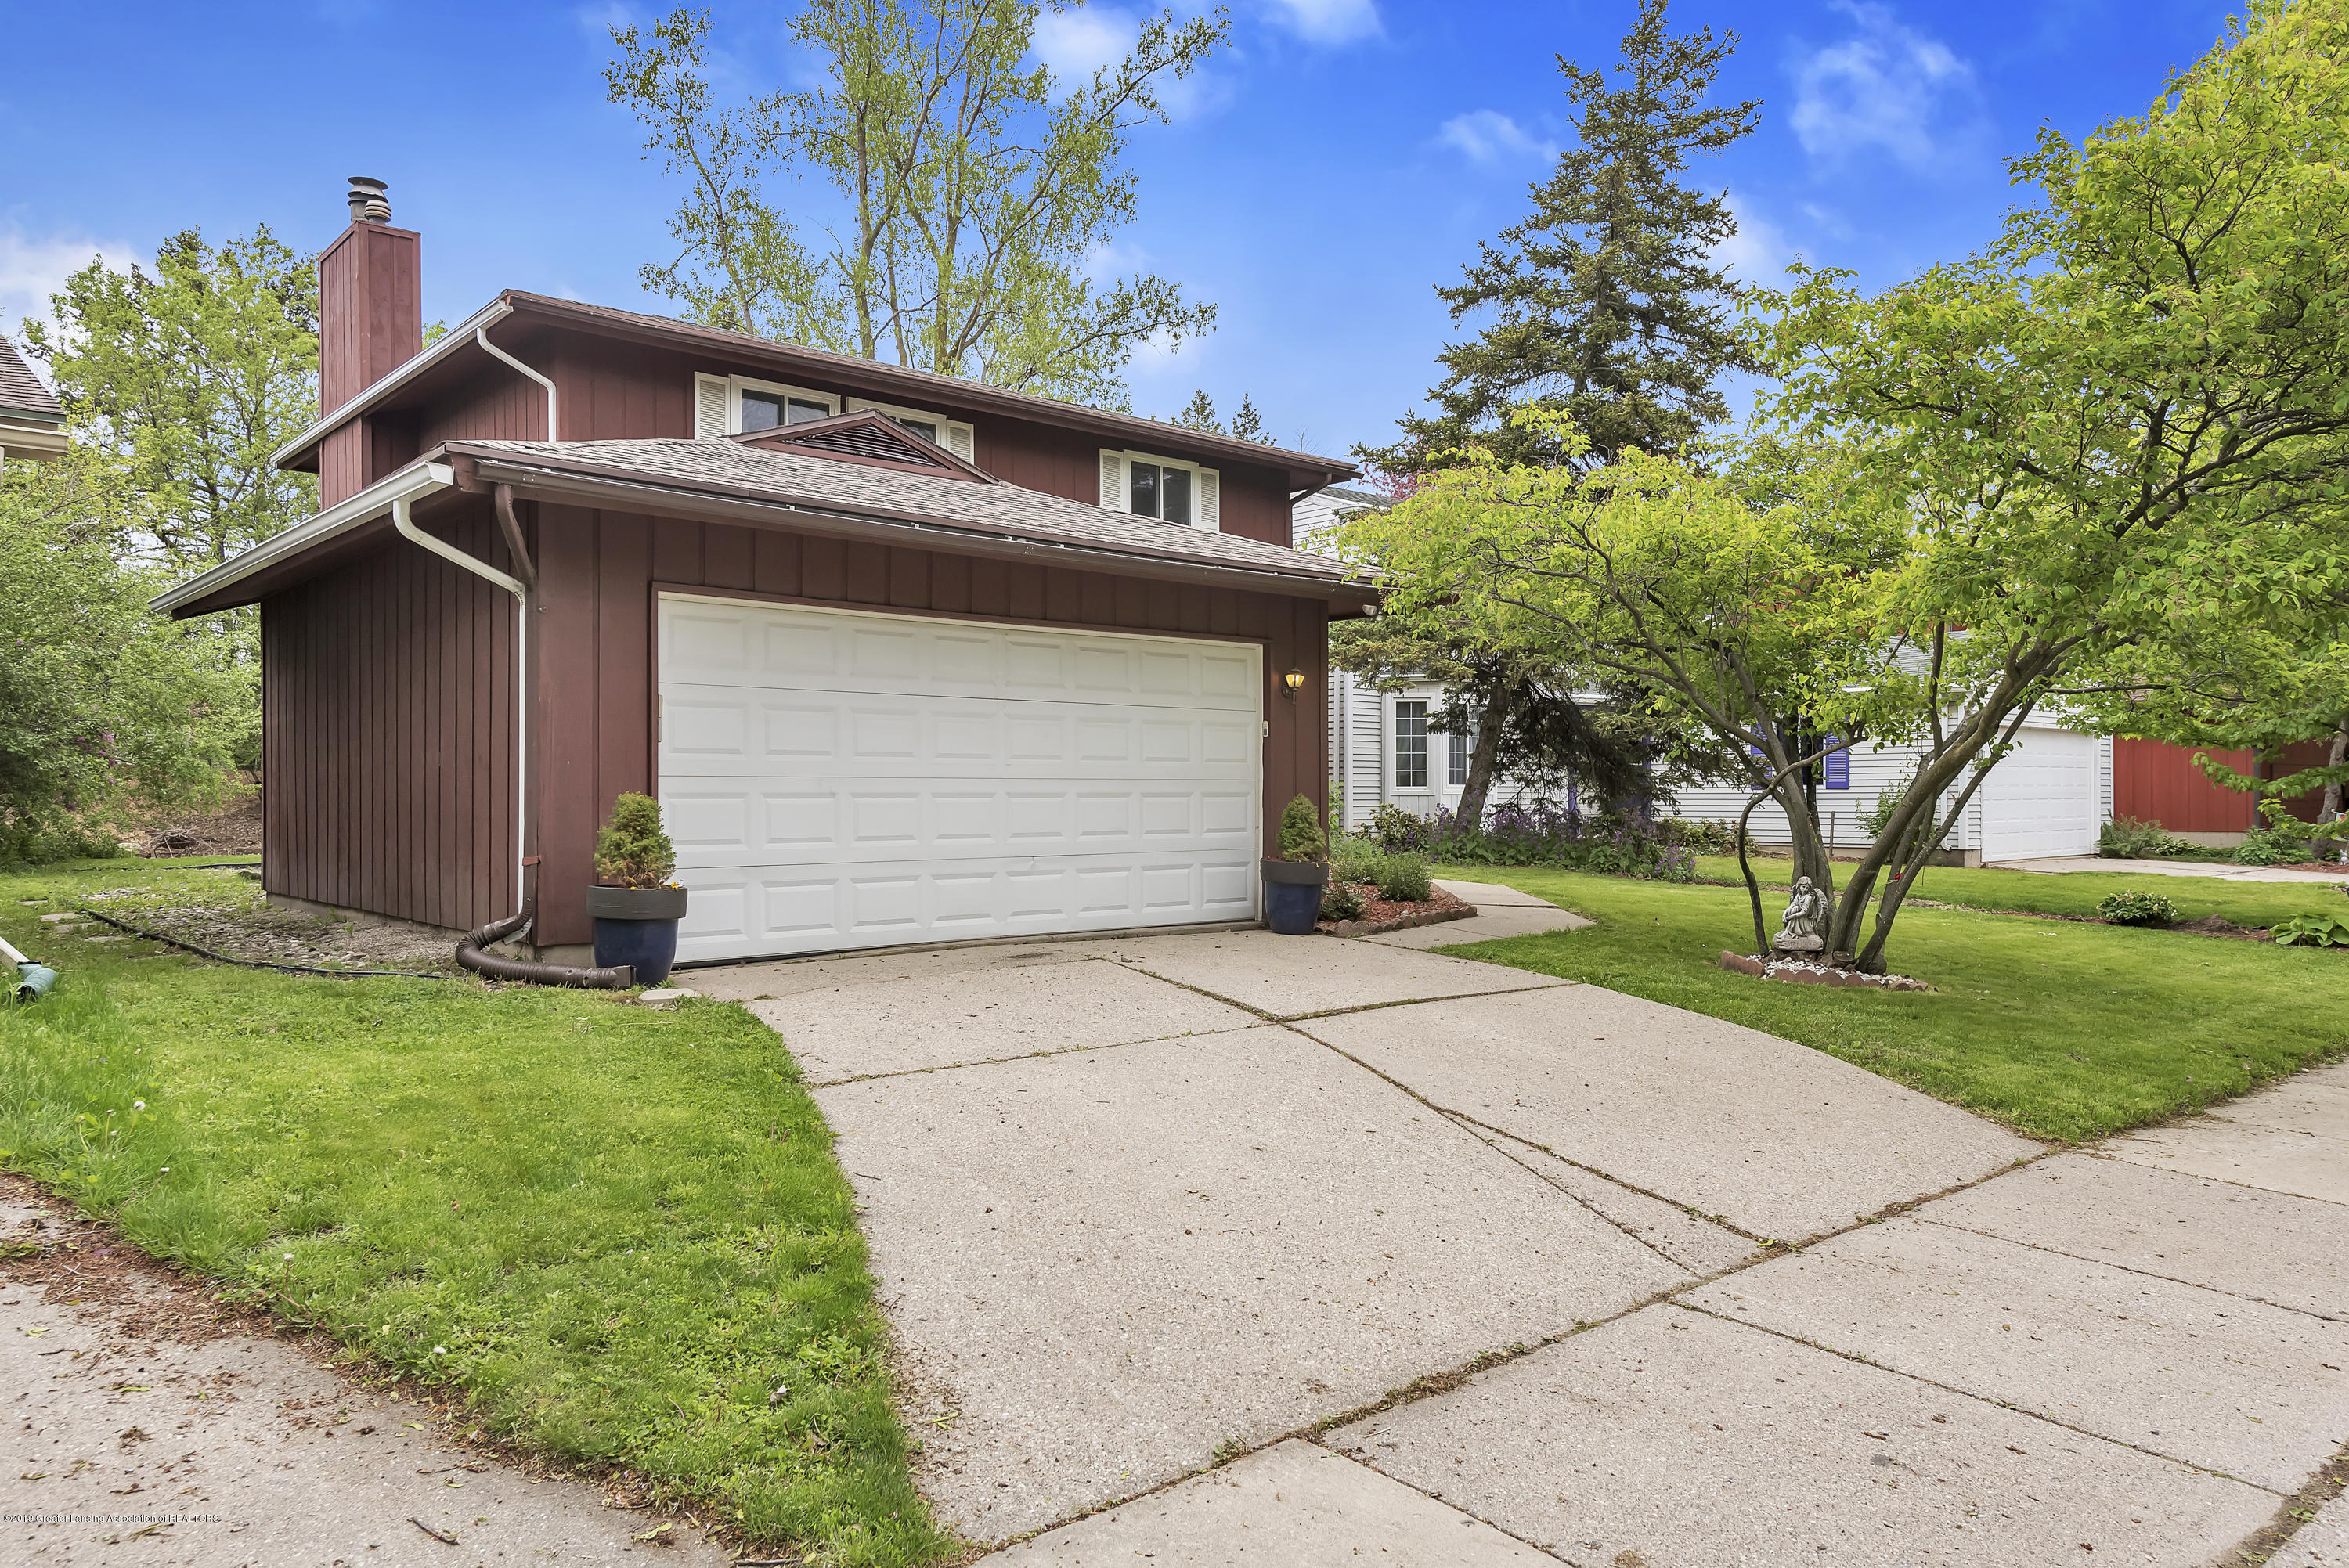 1336 Chartwell Dual Carriage Way - 1336-Chartwell-Duel-Carriage-Way-South-E - 3